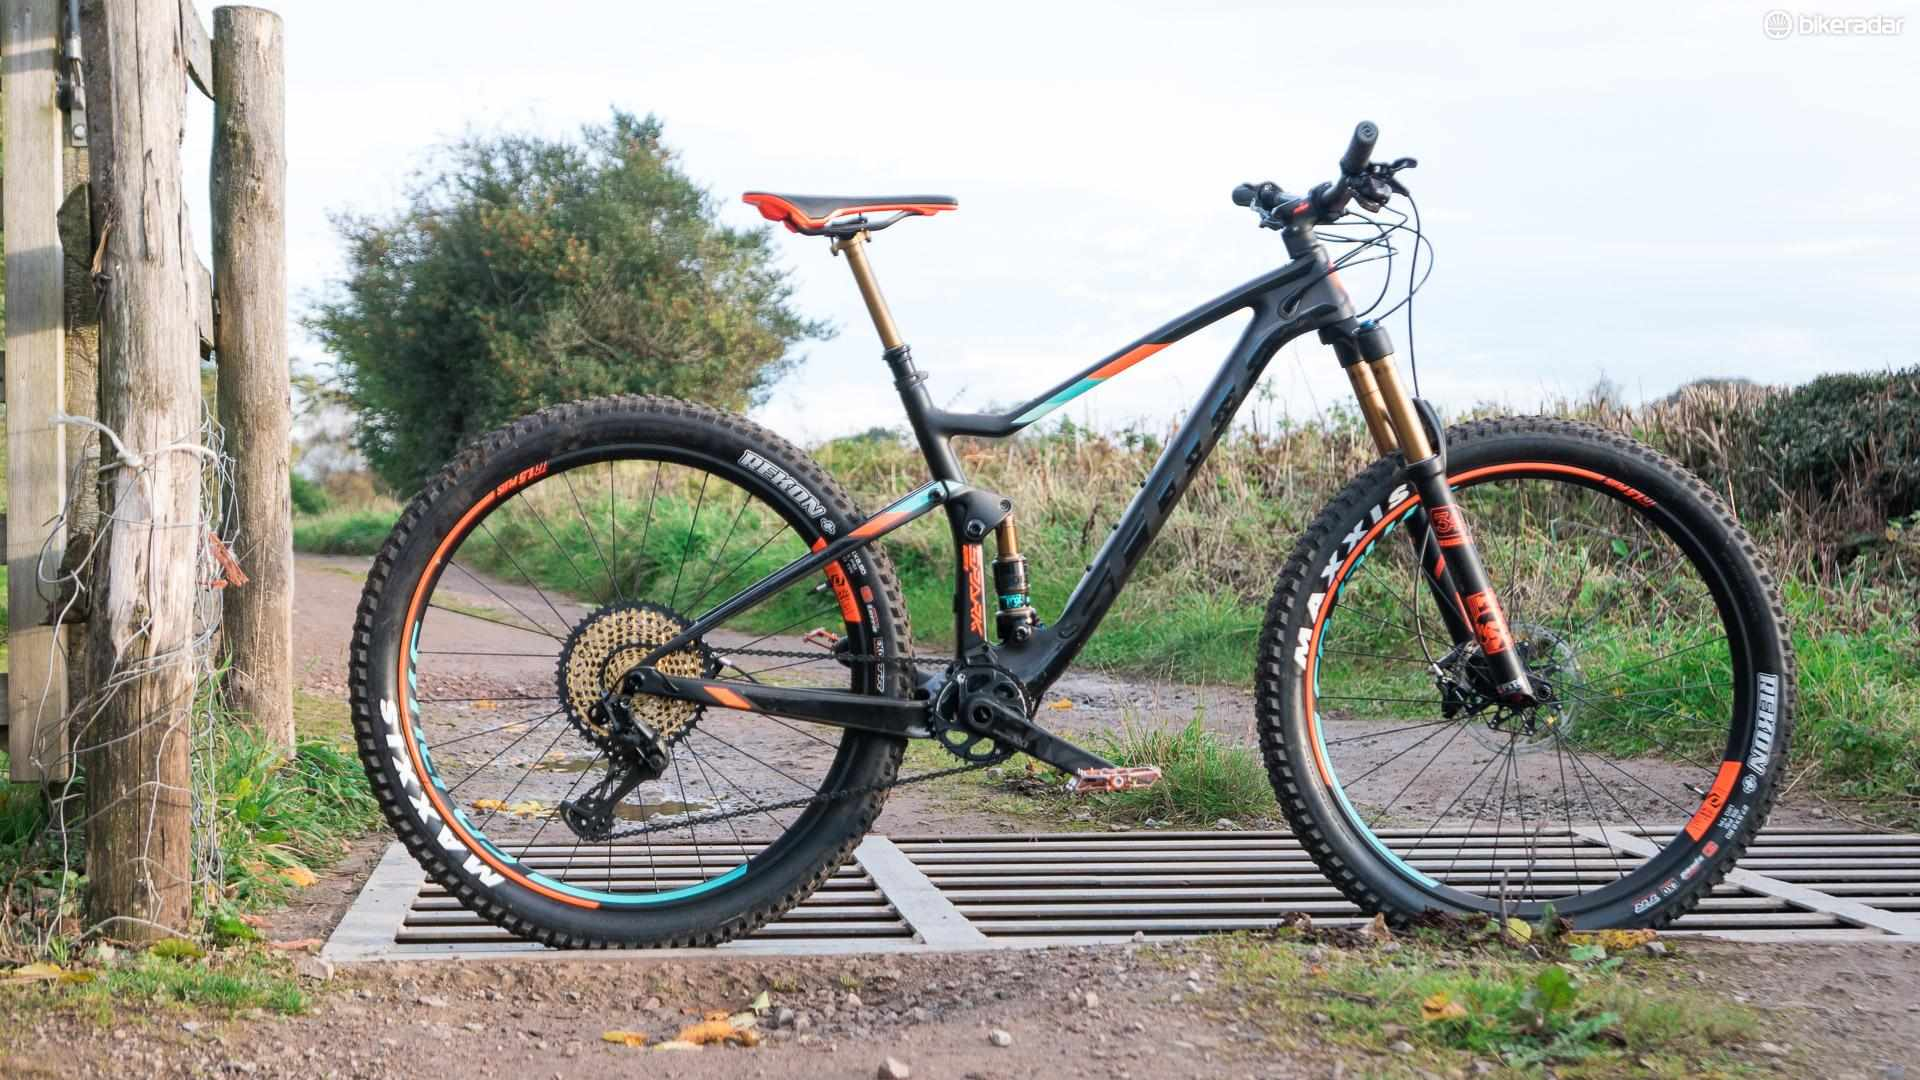 Scott's new Spark Plus is built from the ground up to suit the fat tyres